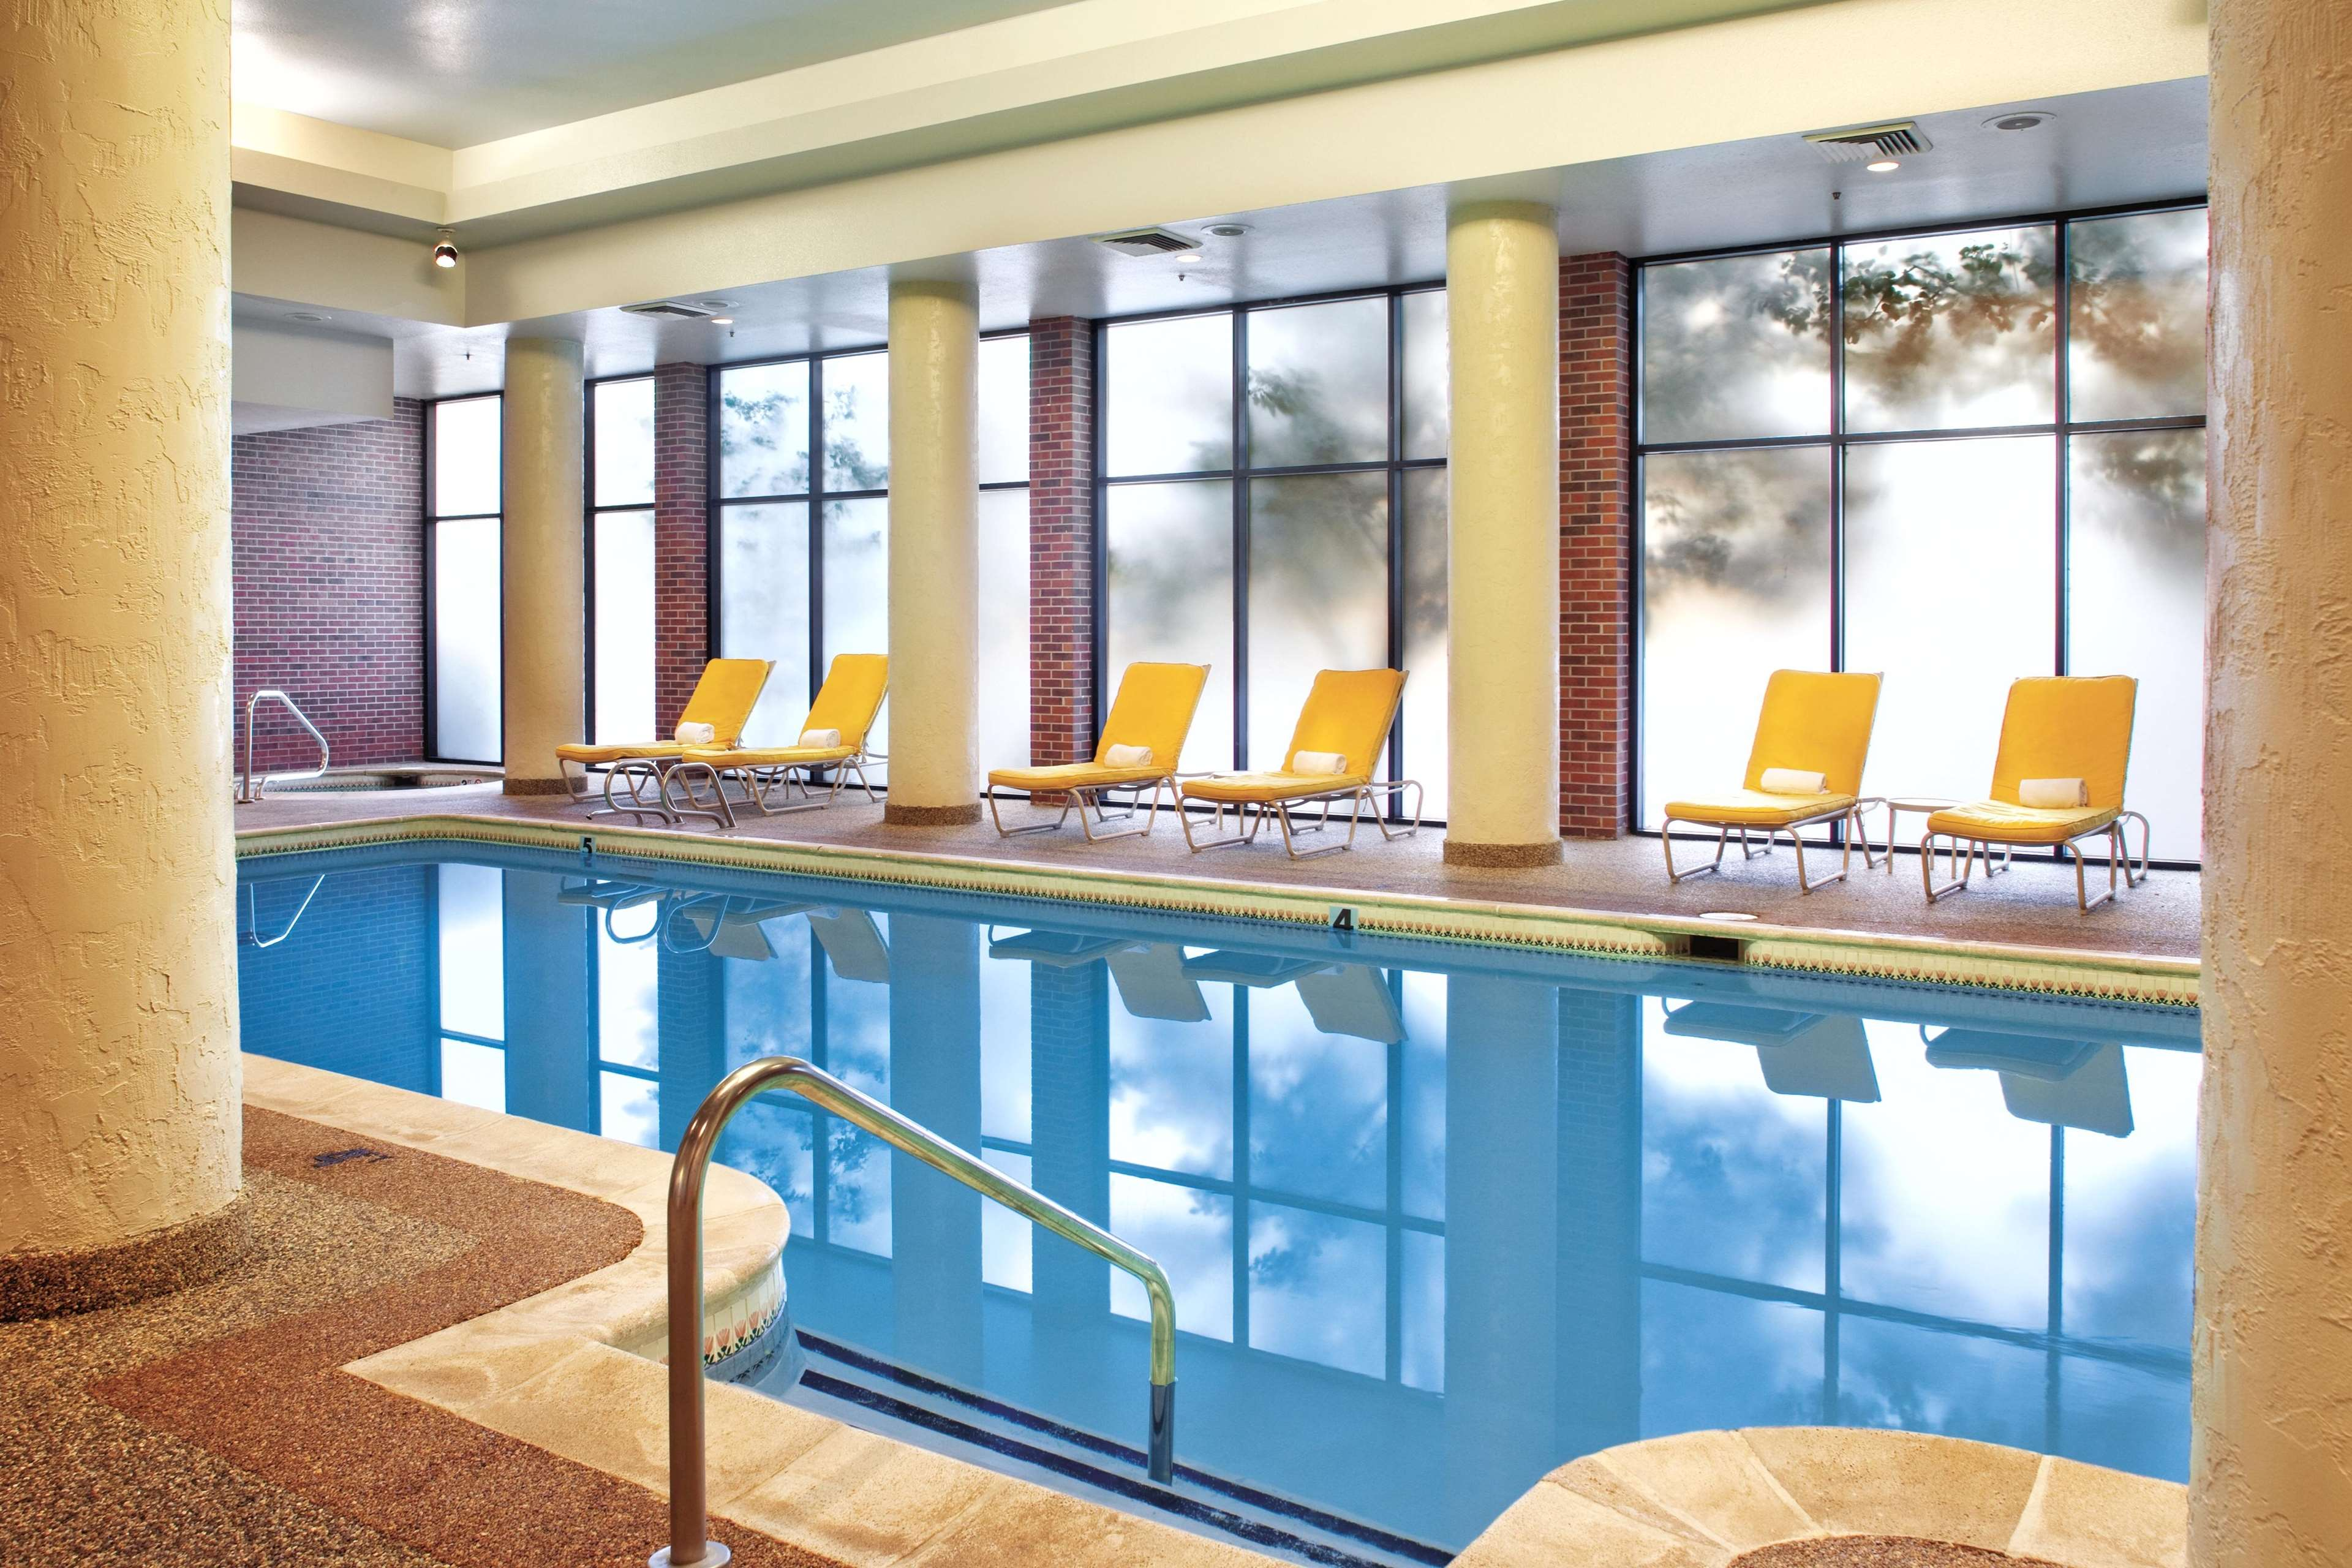 Doubletree By Hilton Hotel Denver Aurora Coupons Aurora Co Near Me 8coupons